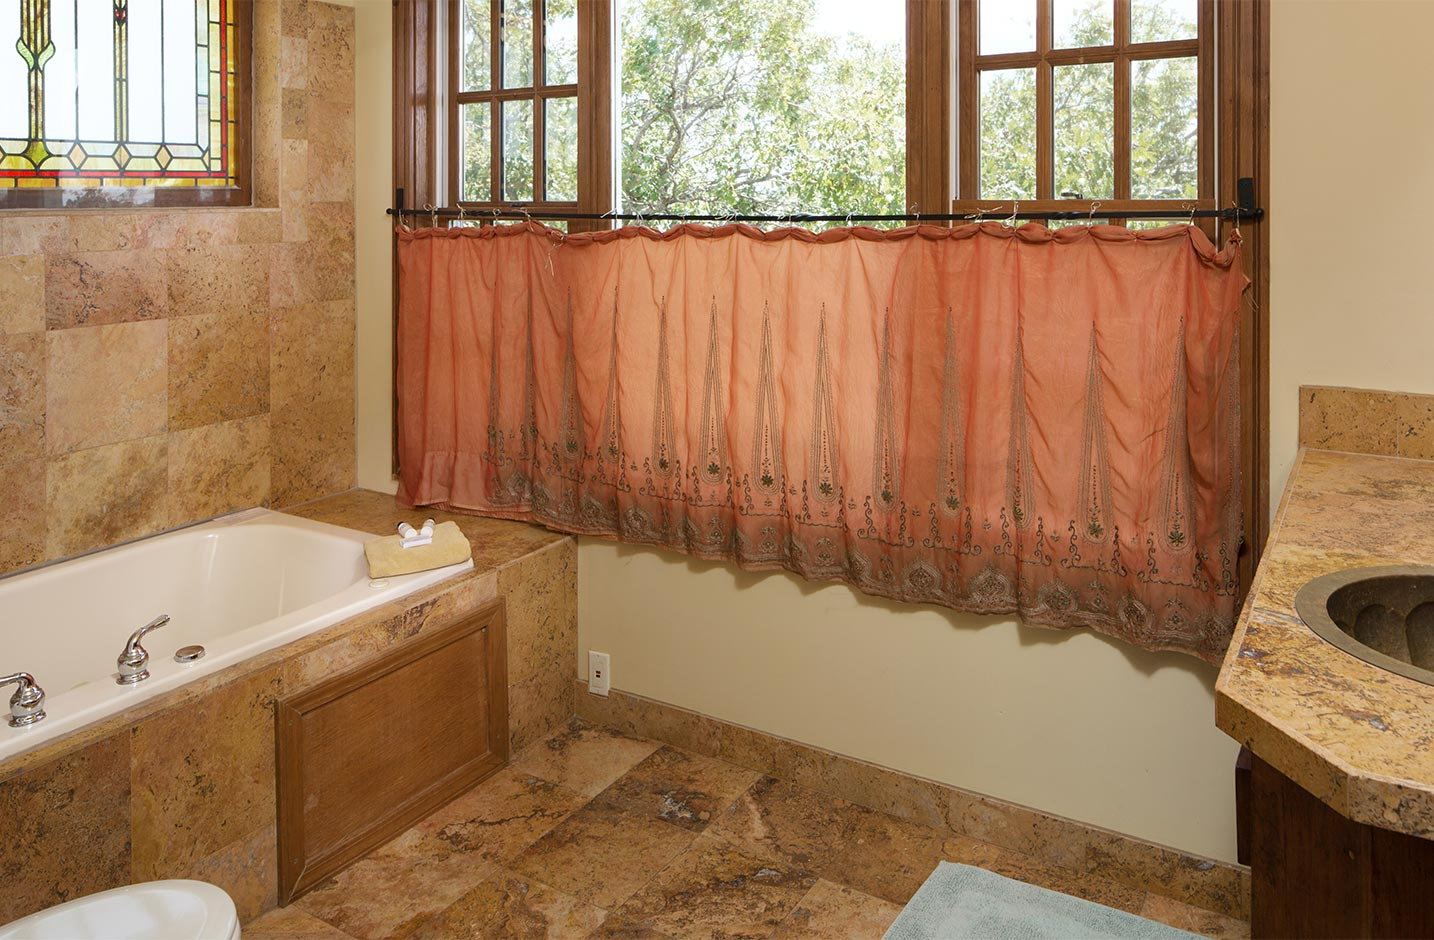 Bathroom with a large tub and windows